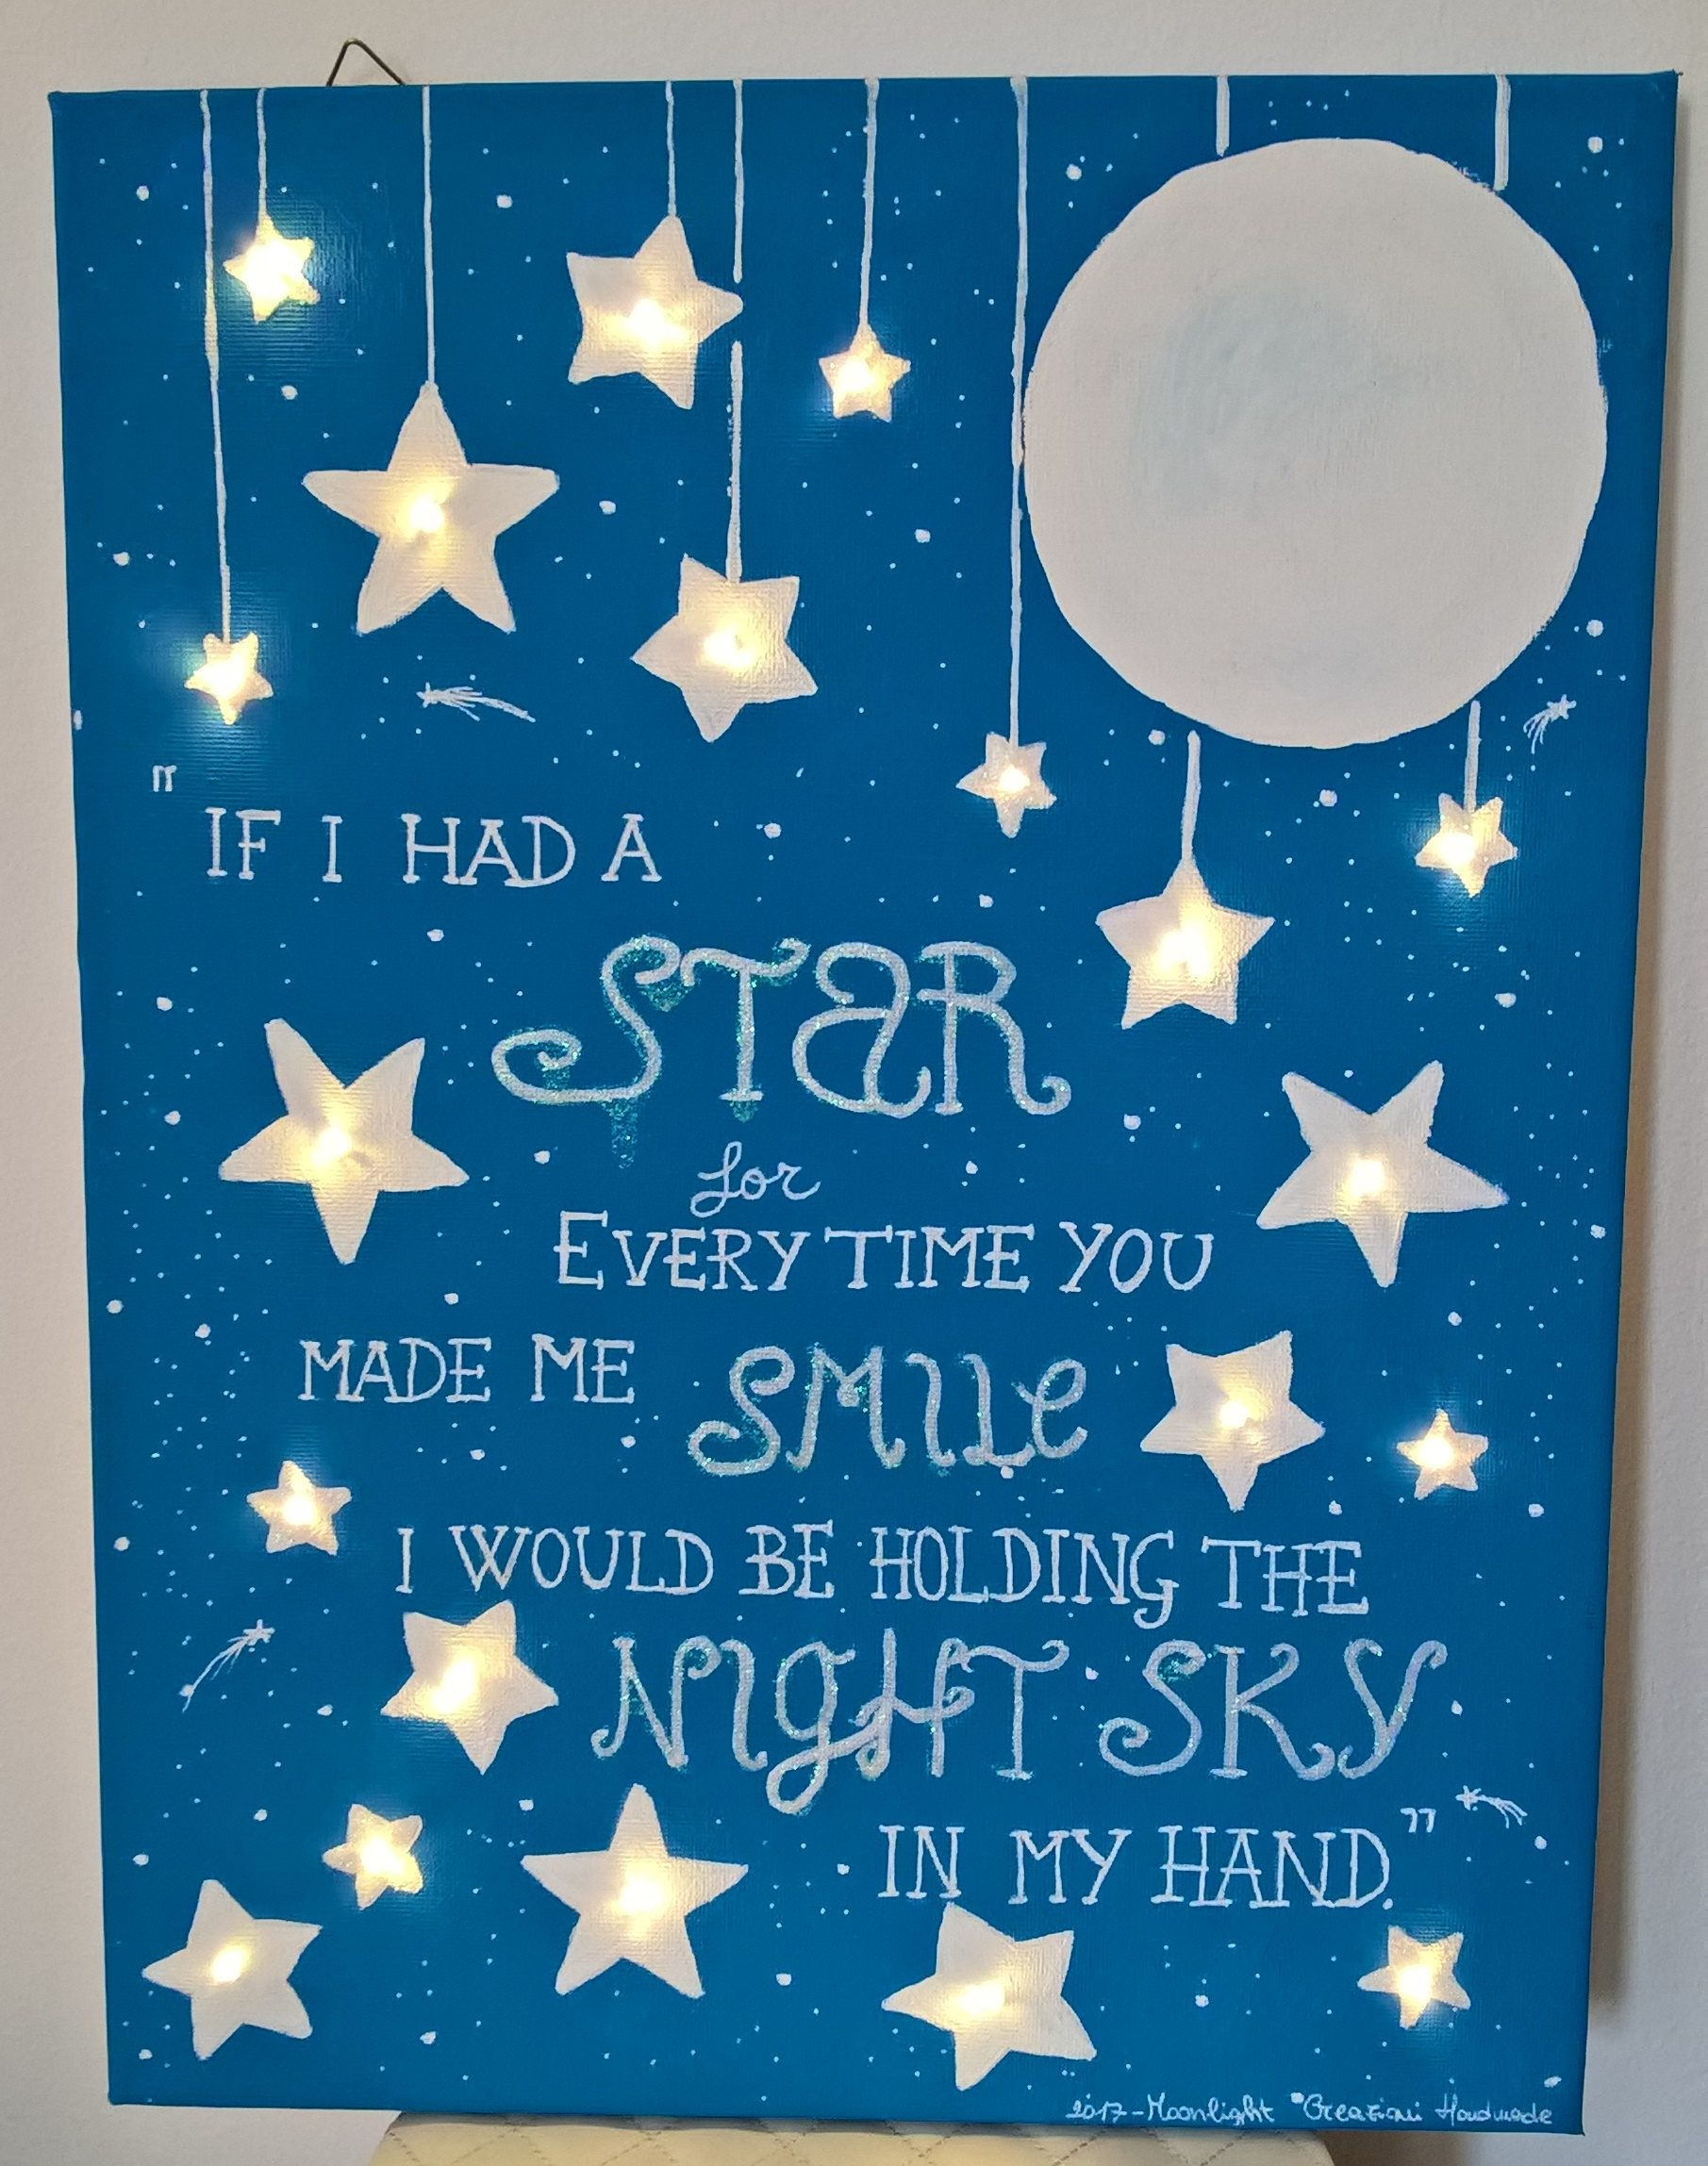 30x40 hand painted canvas with led lighting, perfect gift for a newborn baby di MoonlightCreazioni su Etsy